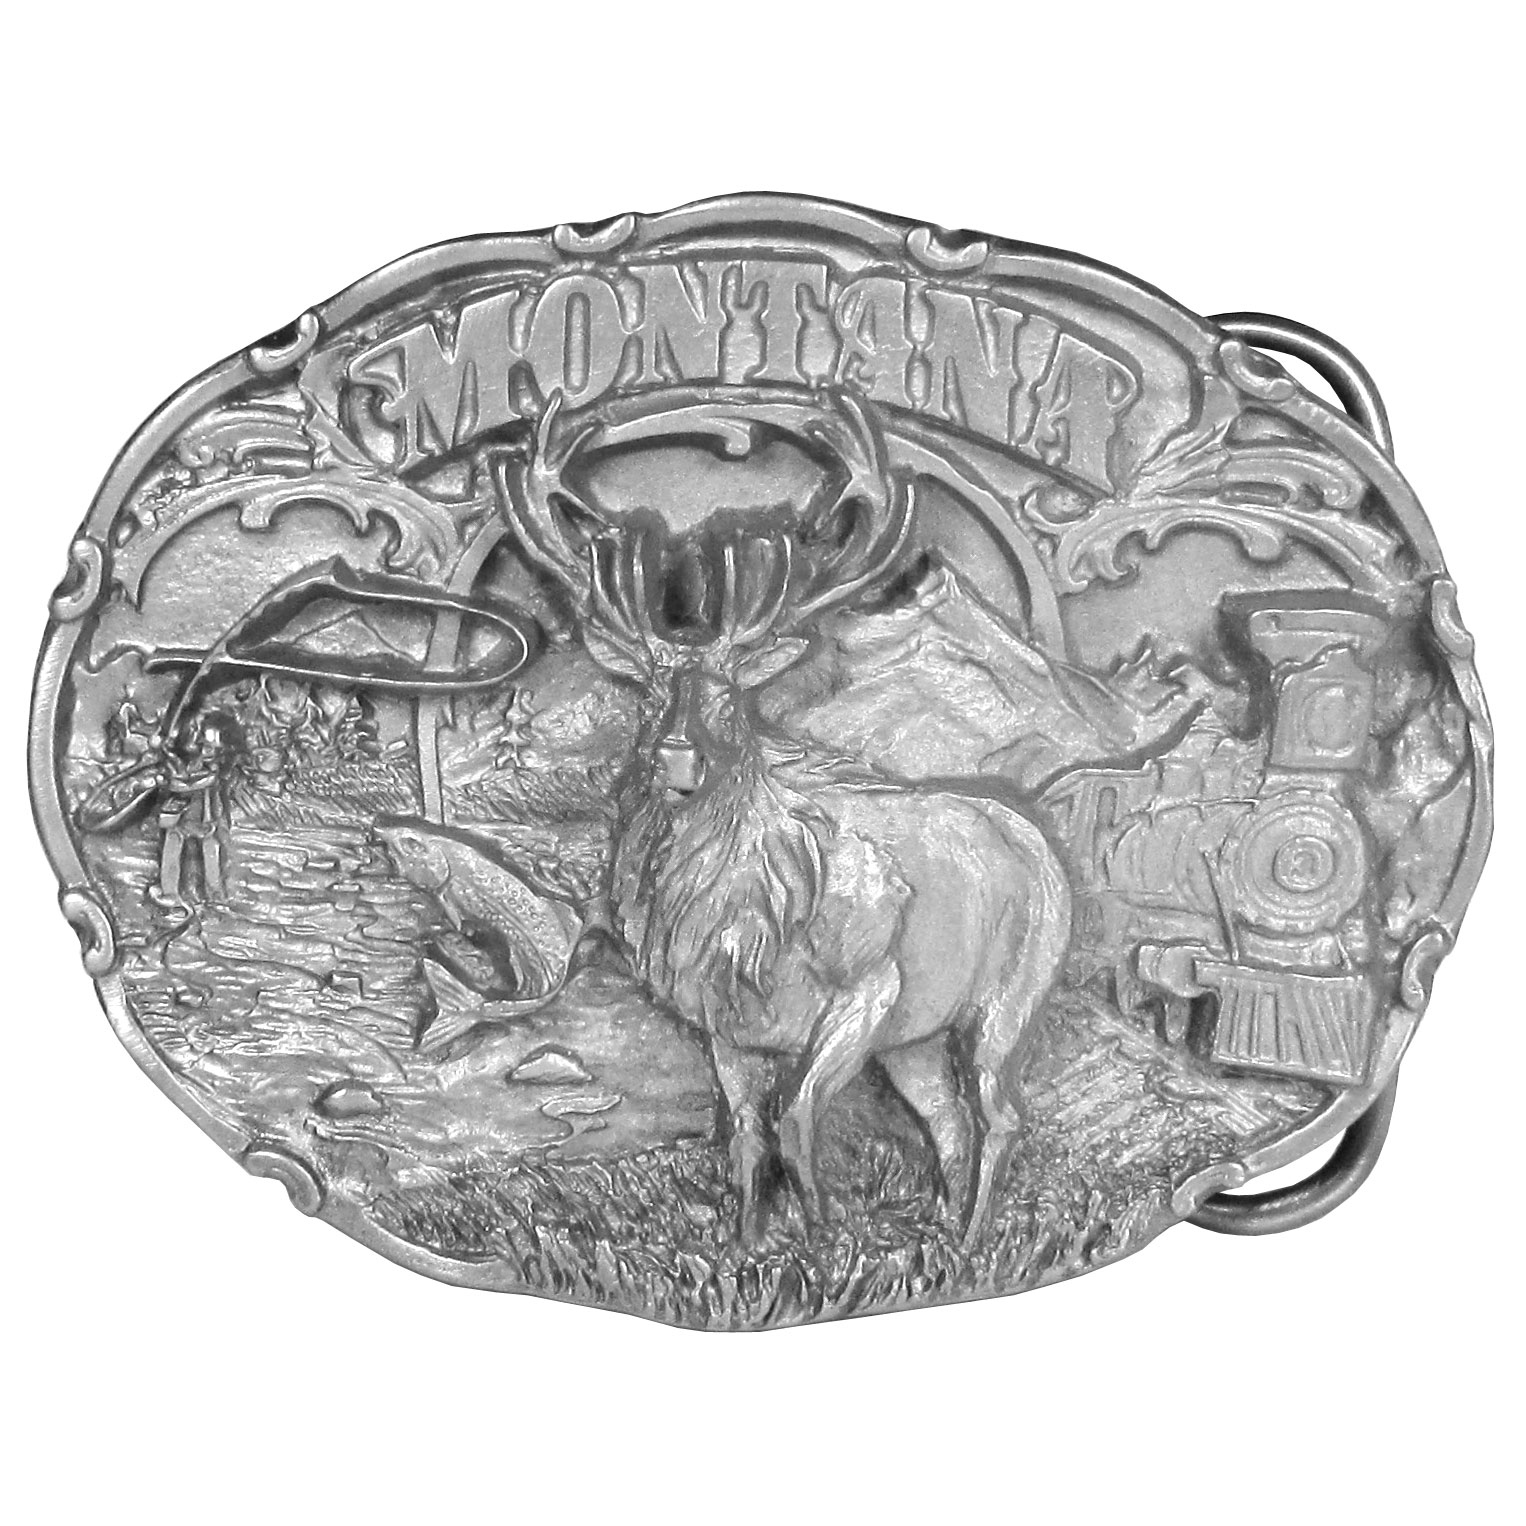 "Montana Antiqued Belt Buckle - ""This Montana buckle has the image of an elk front and center. It is surrounded by a person fly fishing in a river, grass, a mountain and a railroad car. On the back are the words, """"Montana became the 41st state on November 8, 1889. The state flower is the Bitterroot and the state bird is the Western Meadow Lark."""" This exquisitely carved buckle is made of fully cast metal with a standard bale that fits up to 2"""" belts."""